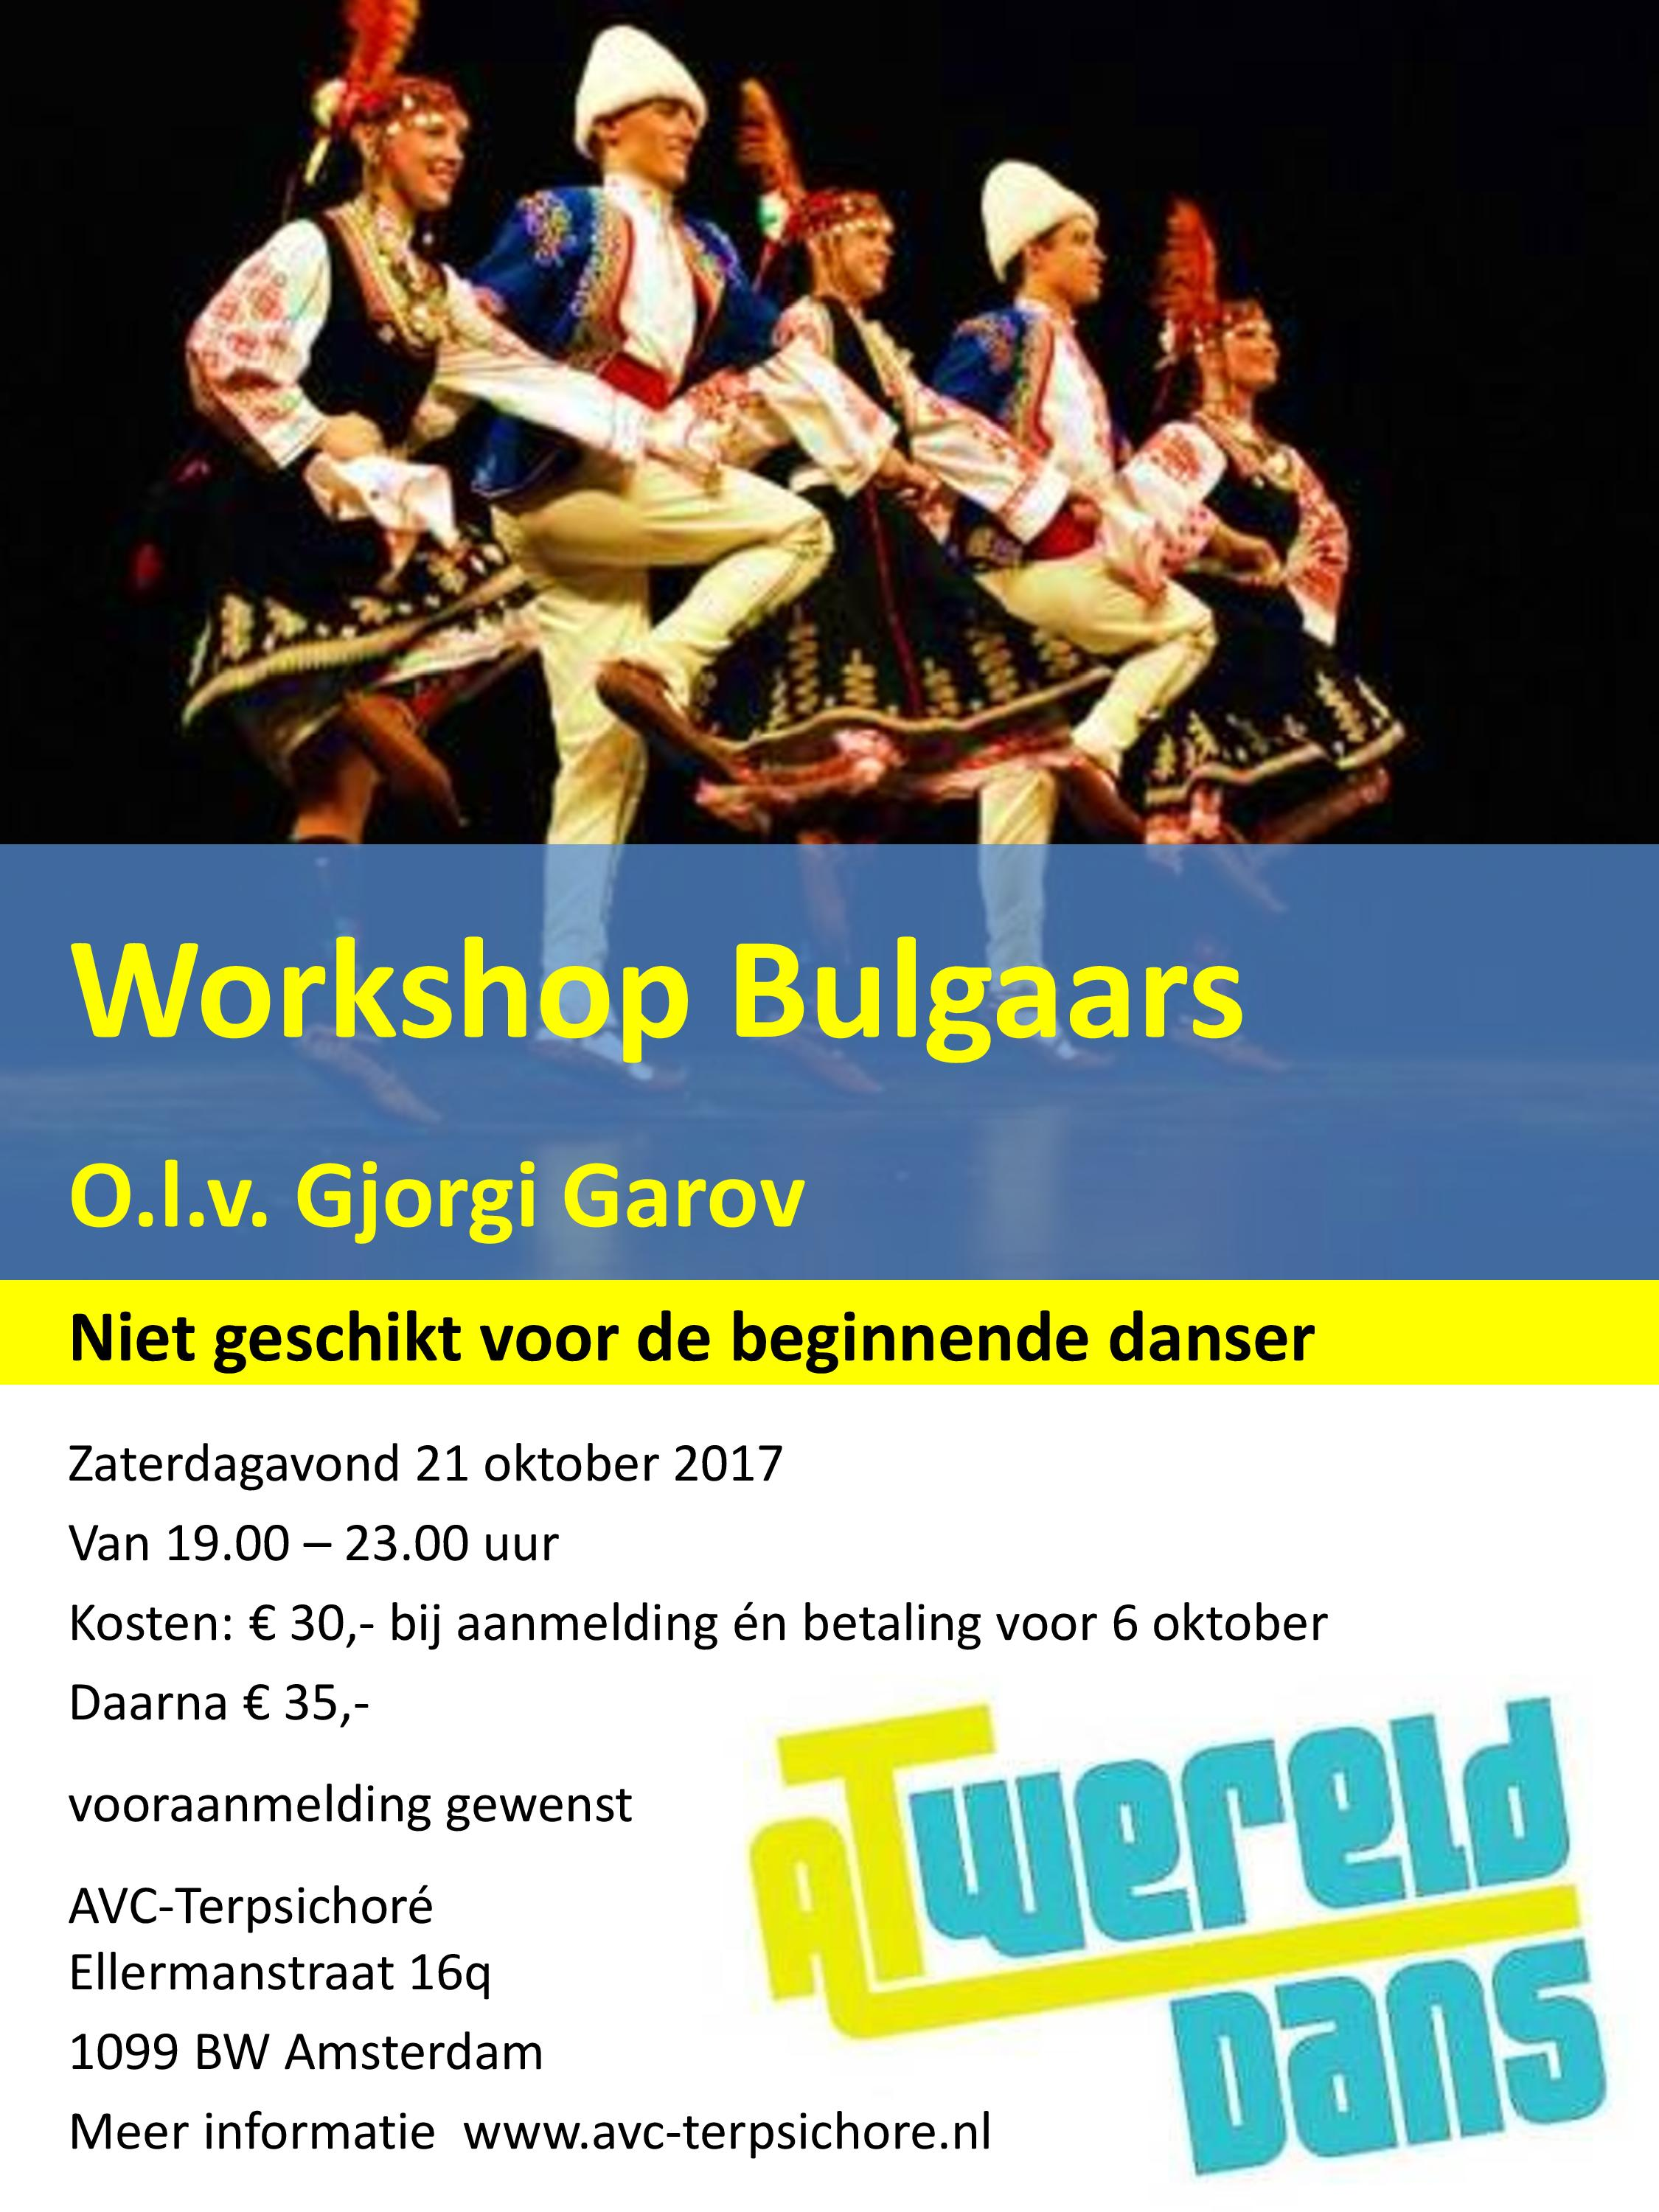 Workshop  Bulgaars Gjorgi Garov 21-10-2017 (464K)